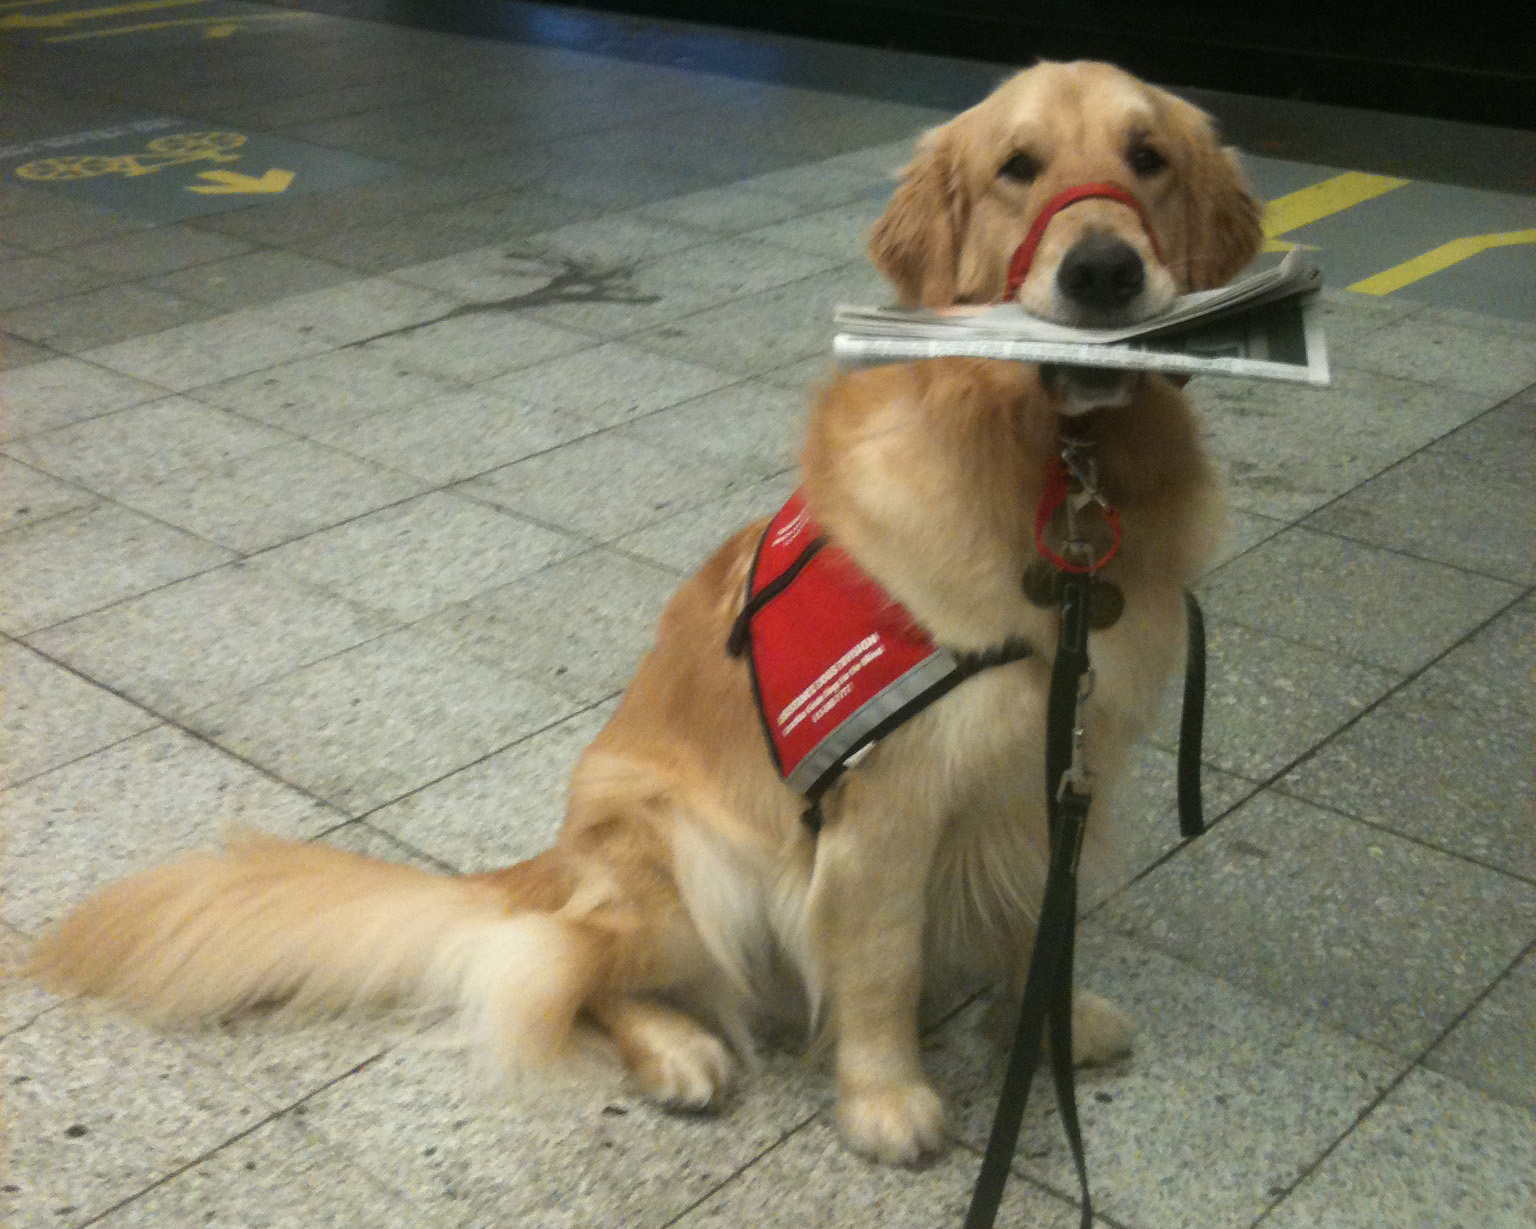 A golden retriever assistance dog wearing a red harness holding a newspaper in its mouth.